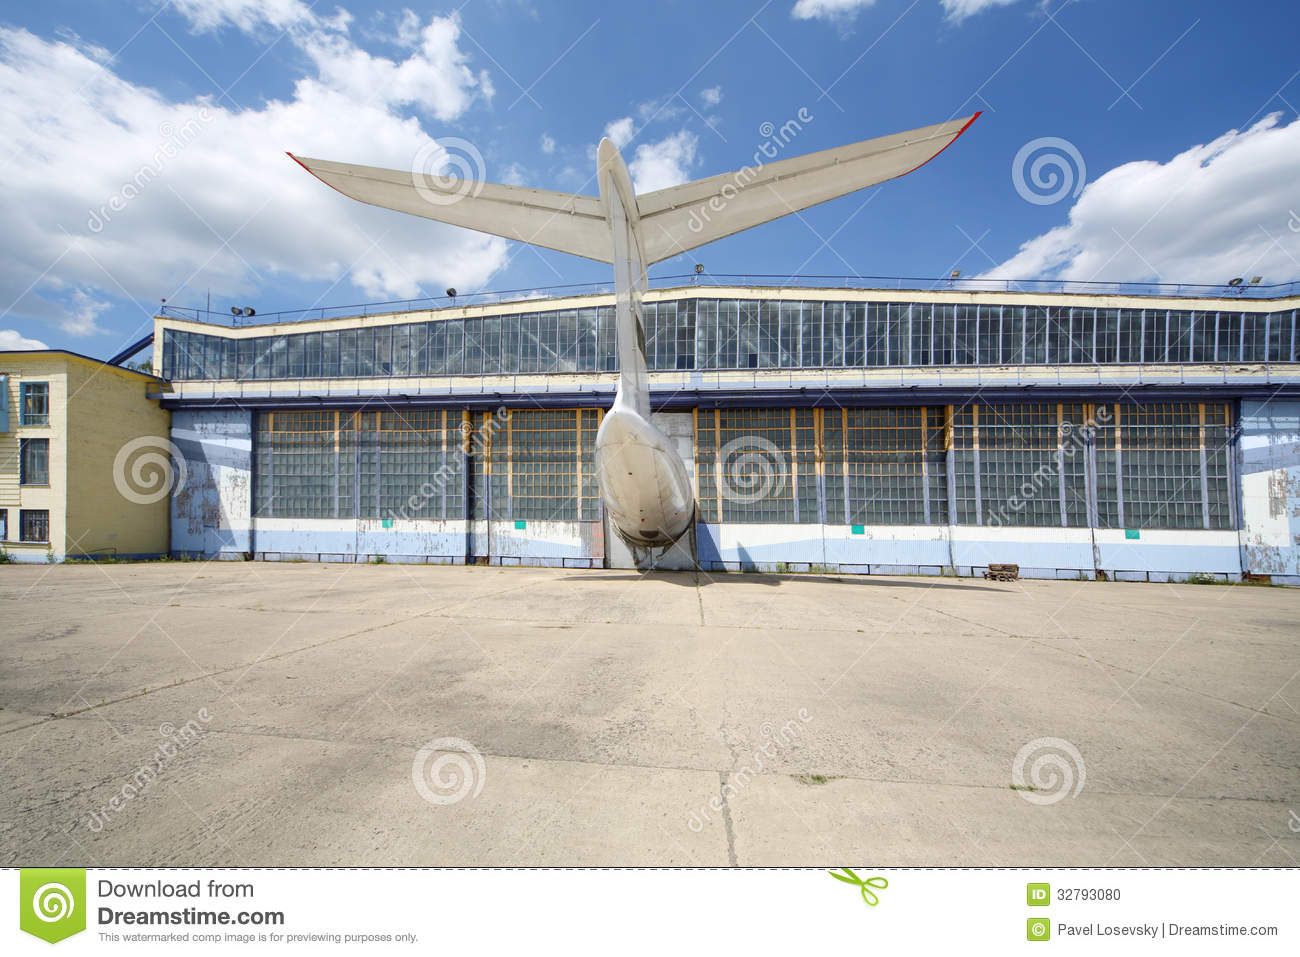 https://thumbs.dreamstime.com/z/big-old-battered-aircraft-hanger-protruding-tail-plane-sunny-summer-day-32793080.jpg